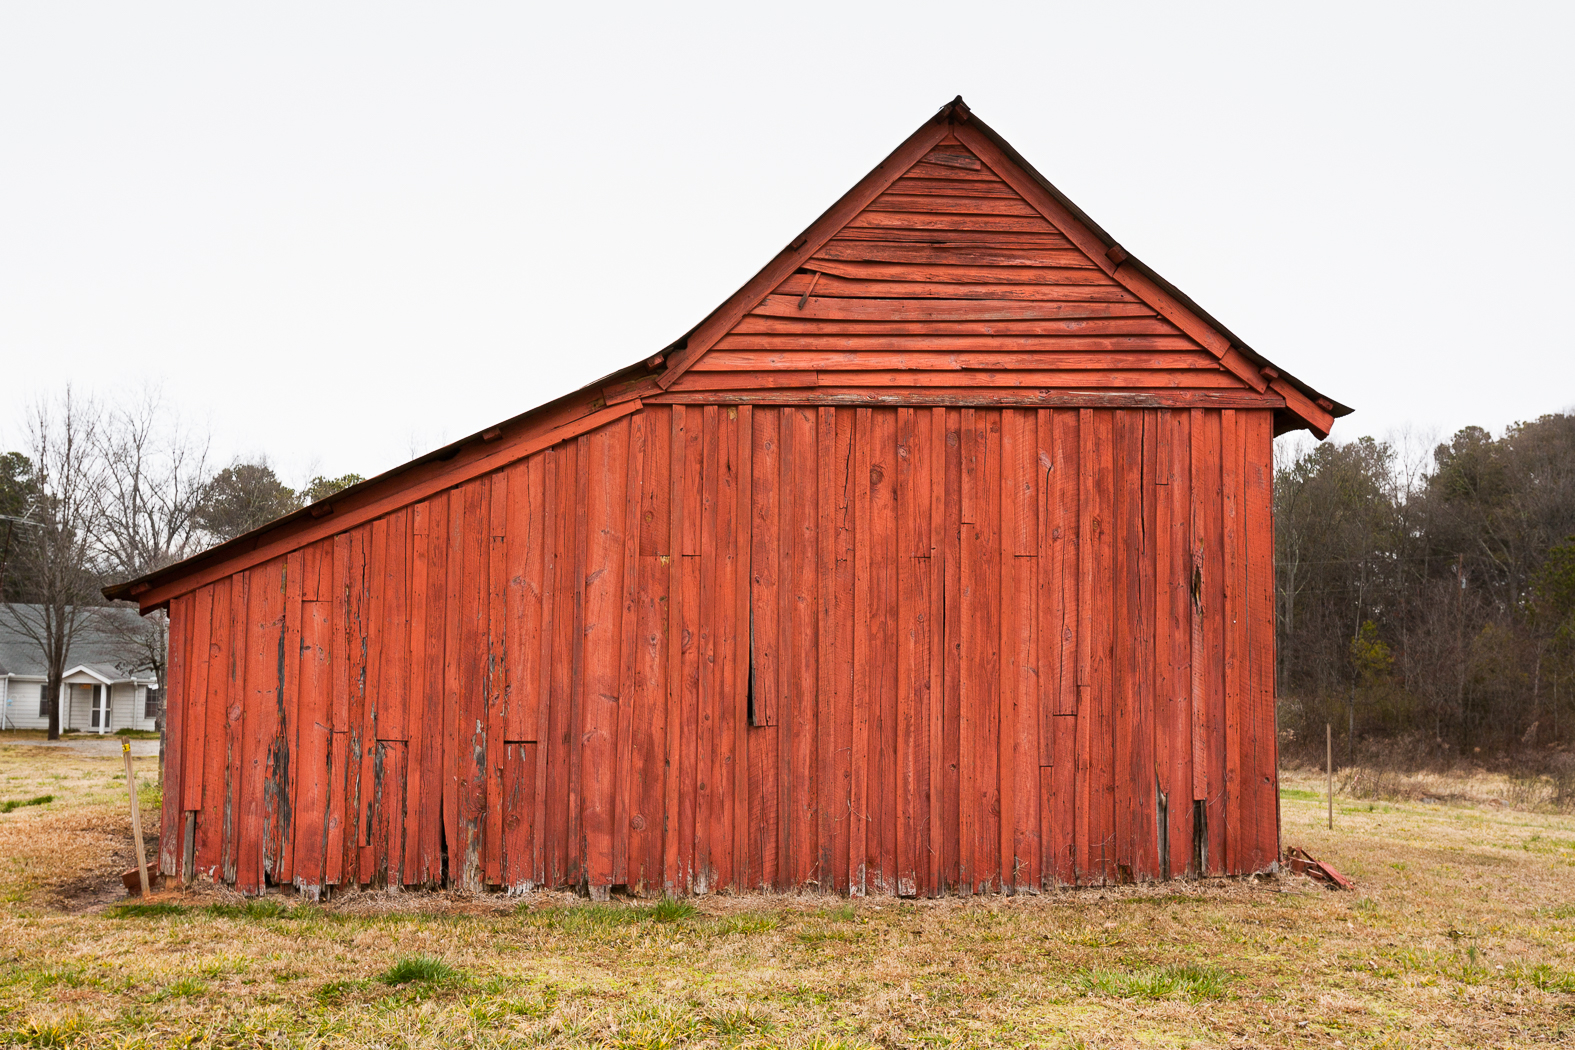 Red Barn, Thomson, GA 2007